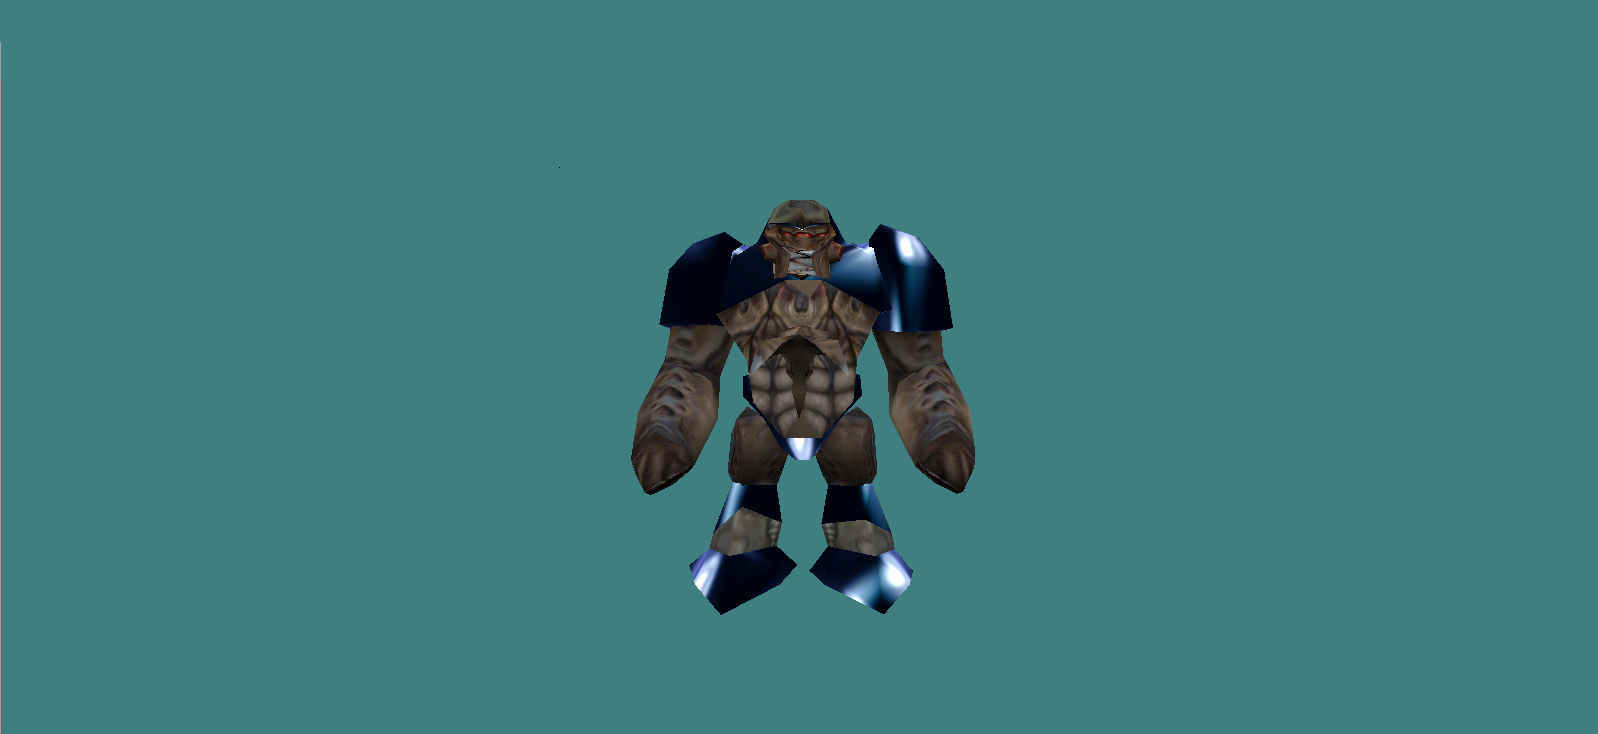 Alien Grunt Alpha Model Ported image - Mod DB